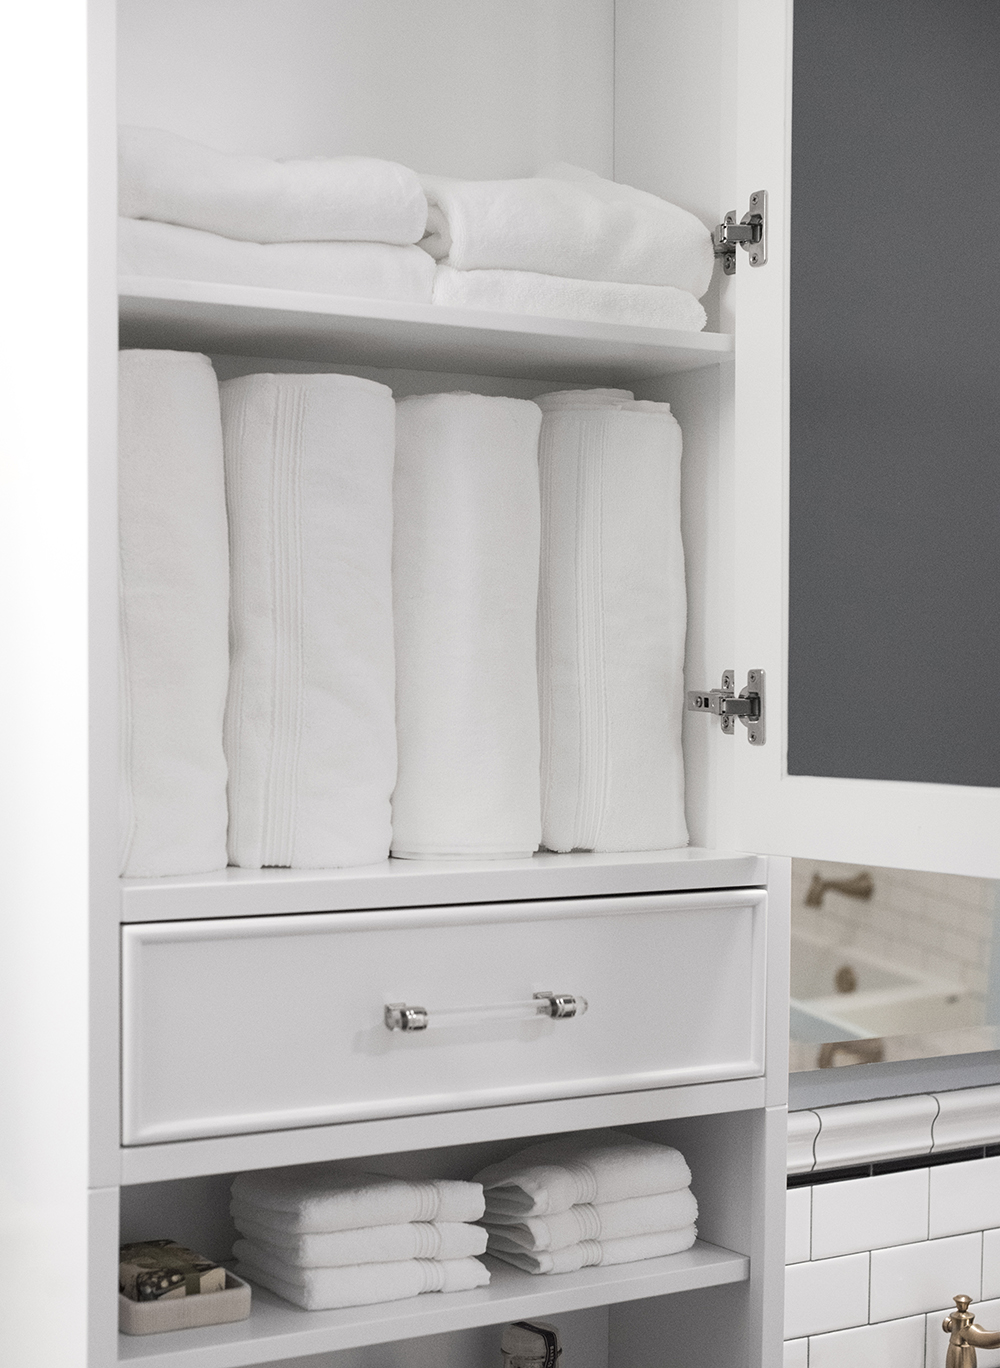 Amazon Finds : For the Bathroom - roomfortuesday.com